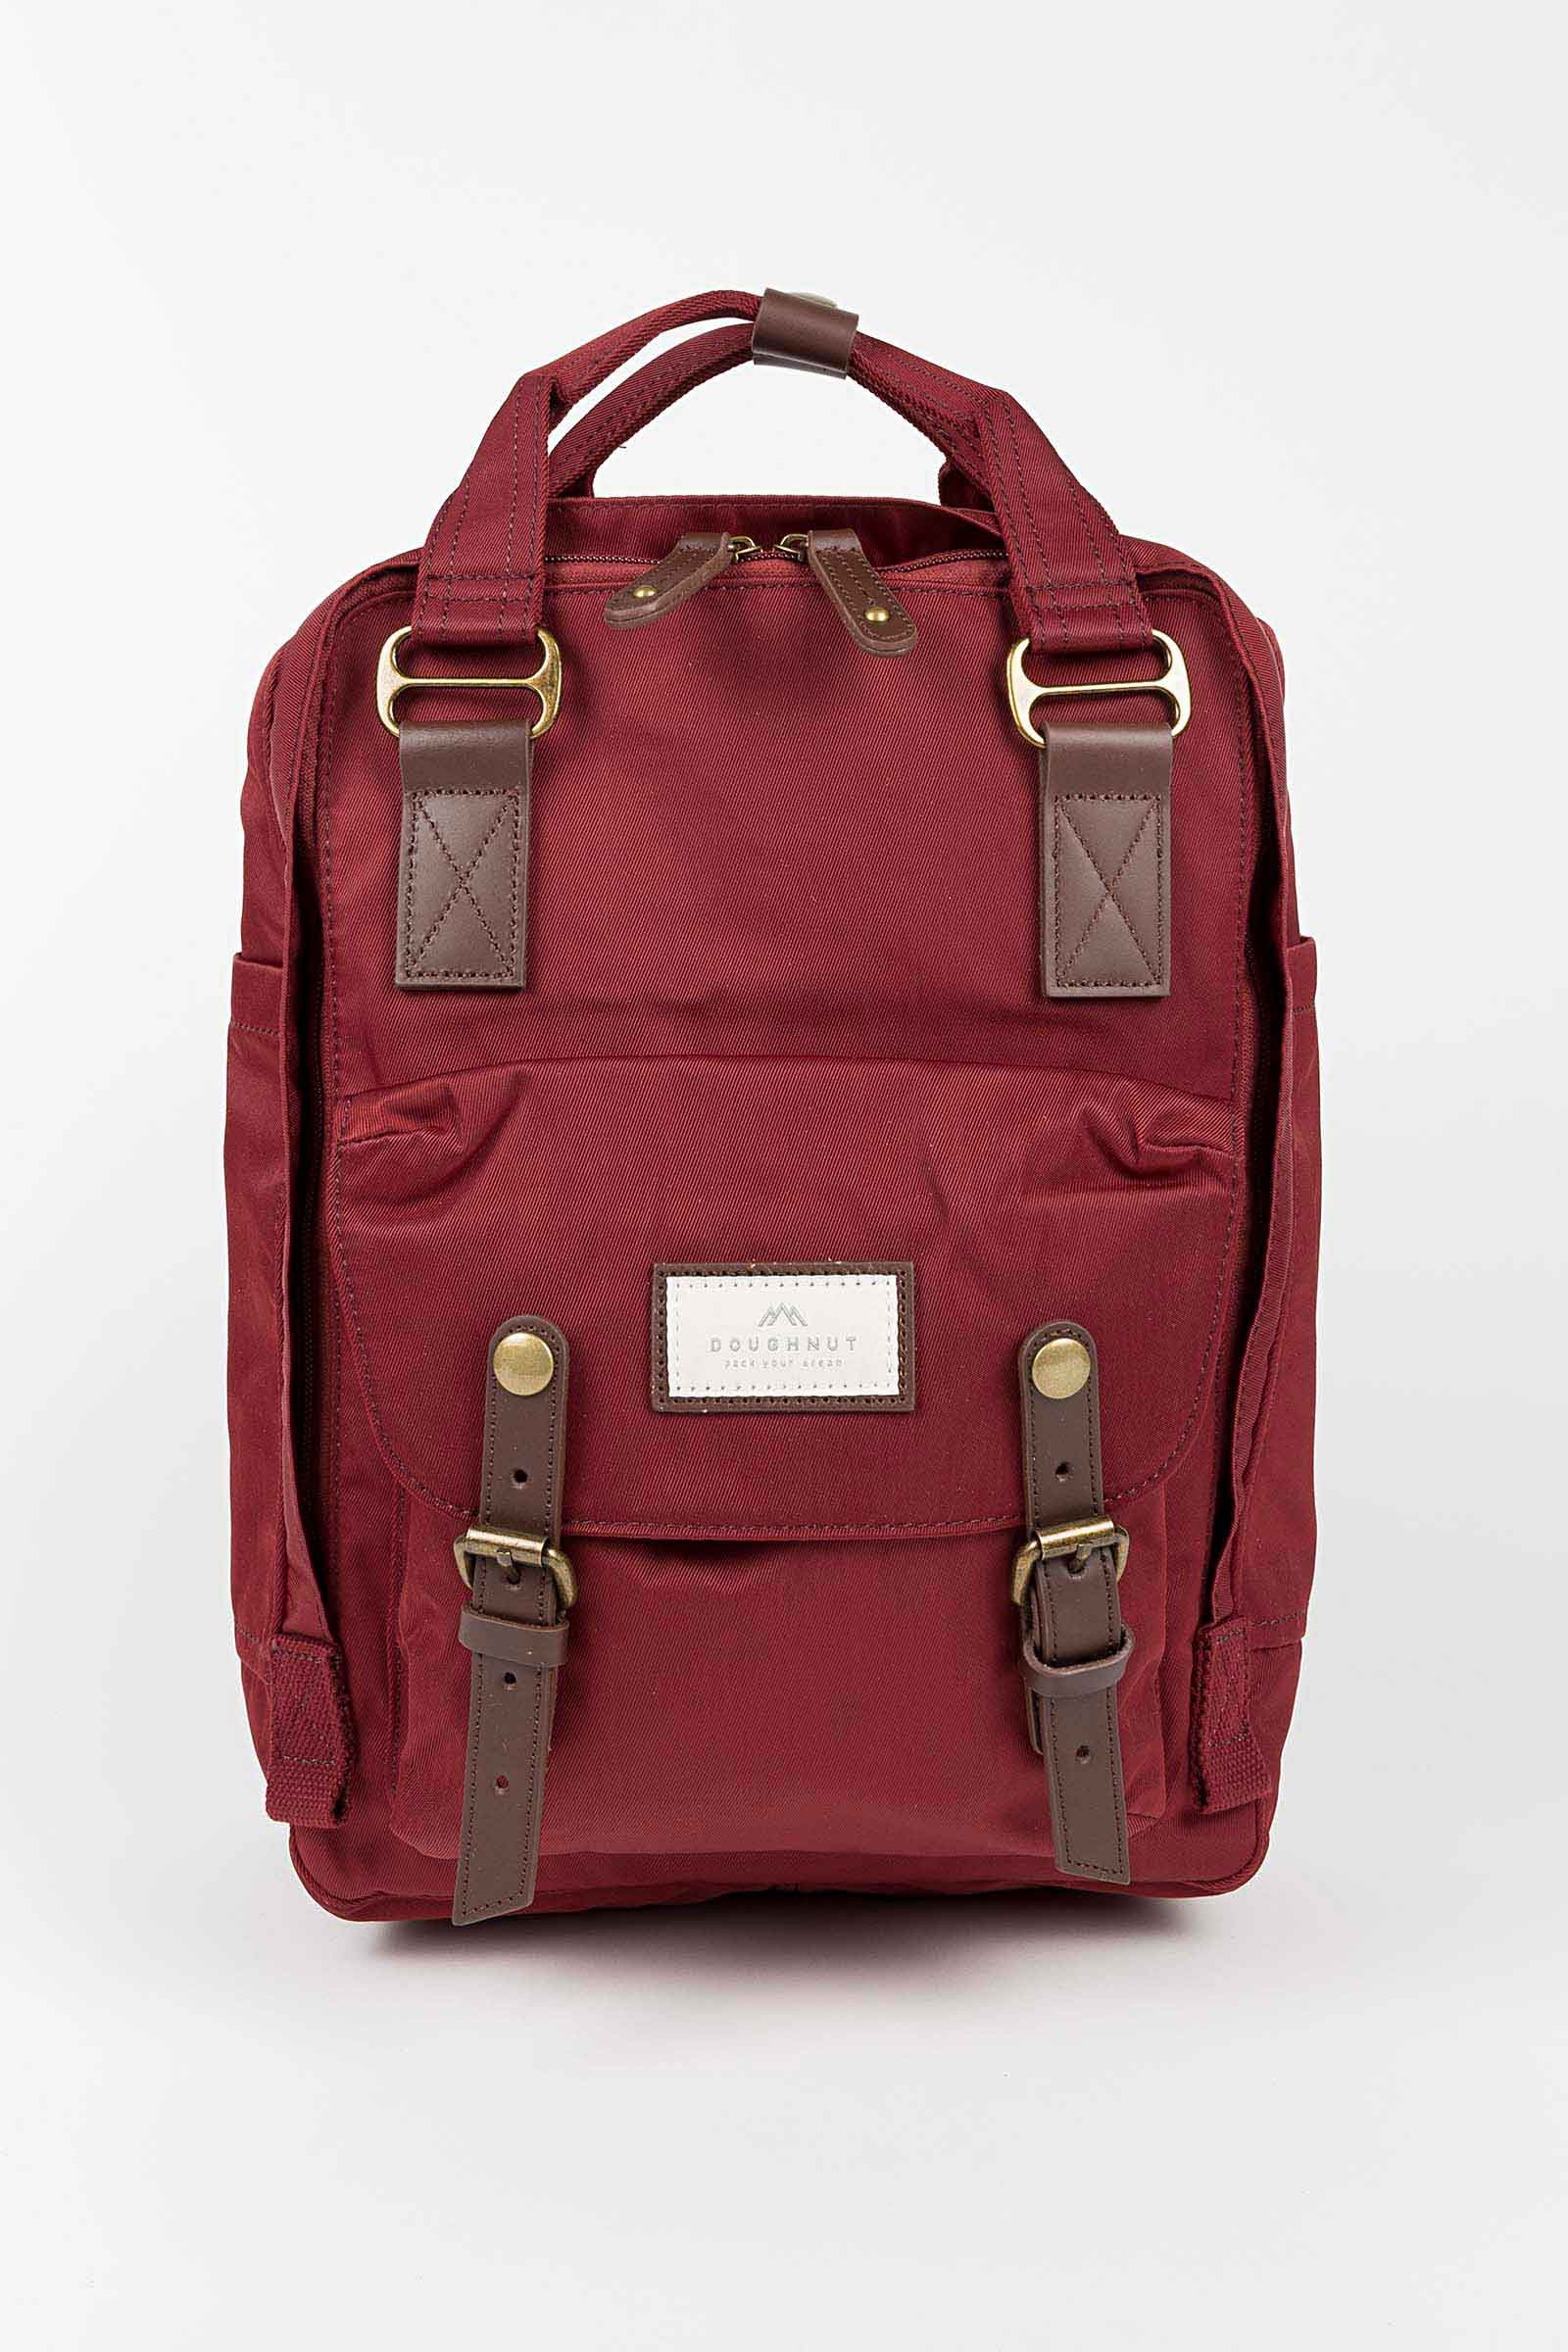 Burgundy Nylon Doughnut Backpack Eduardo & Elisa Rivera